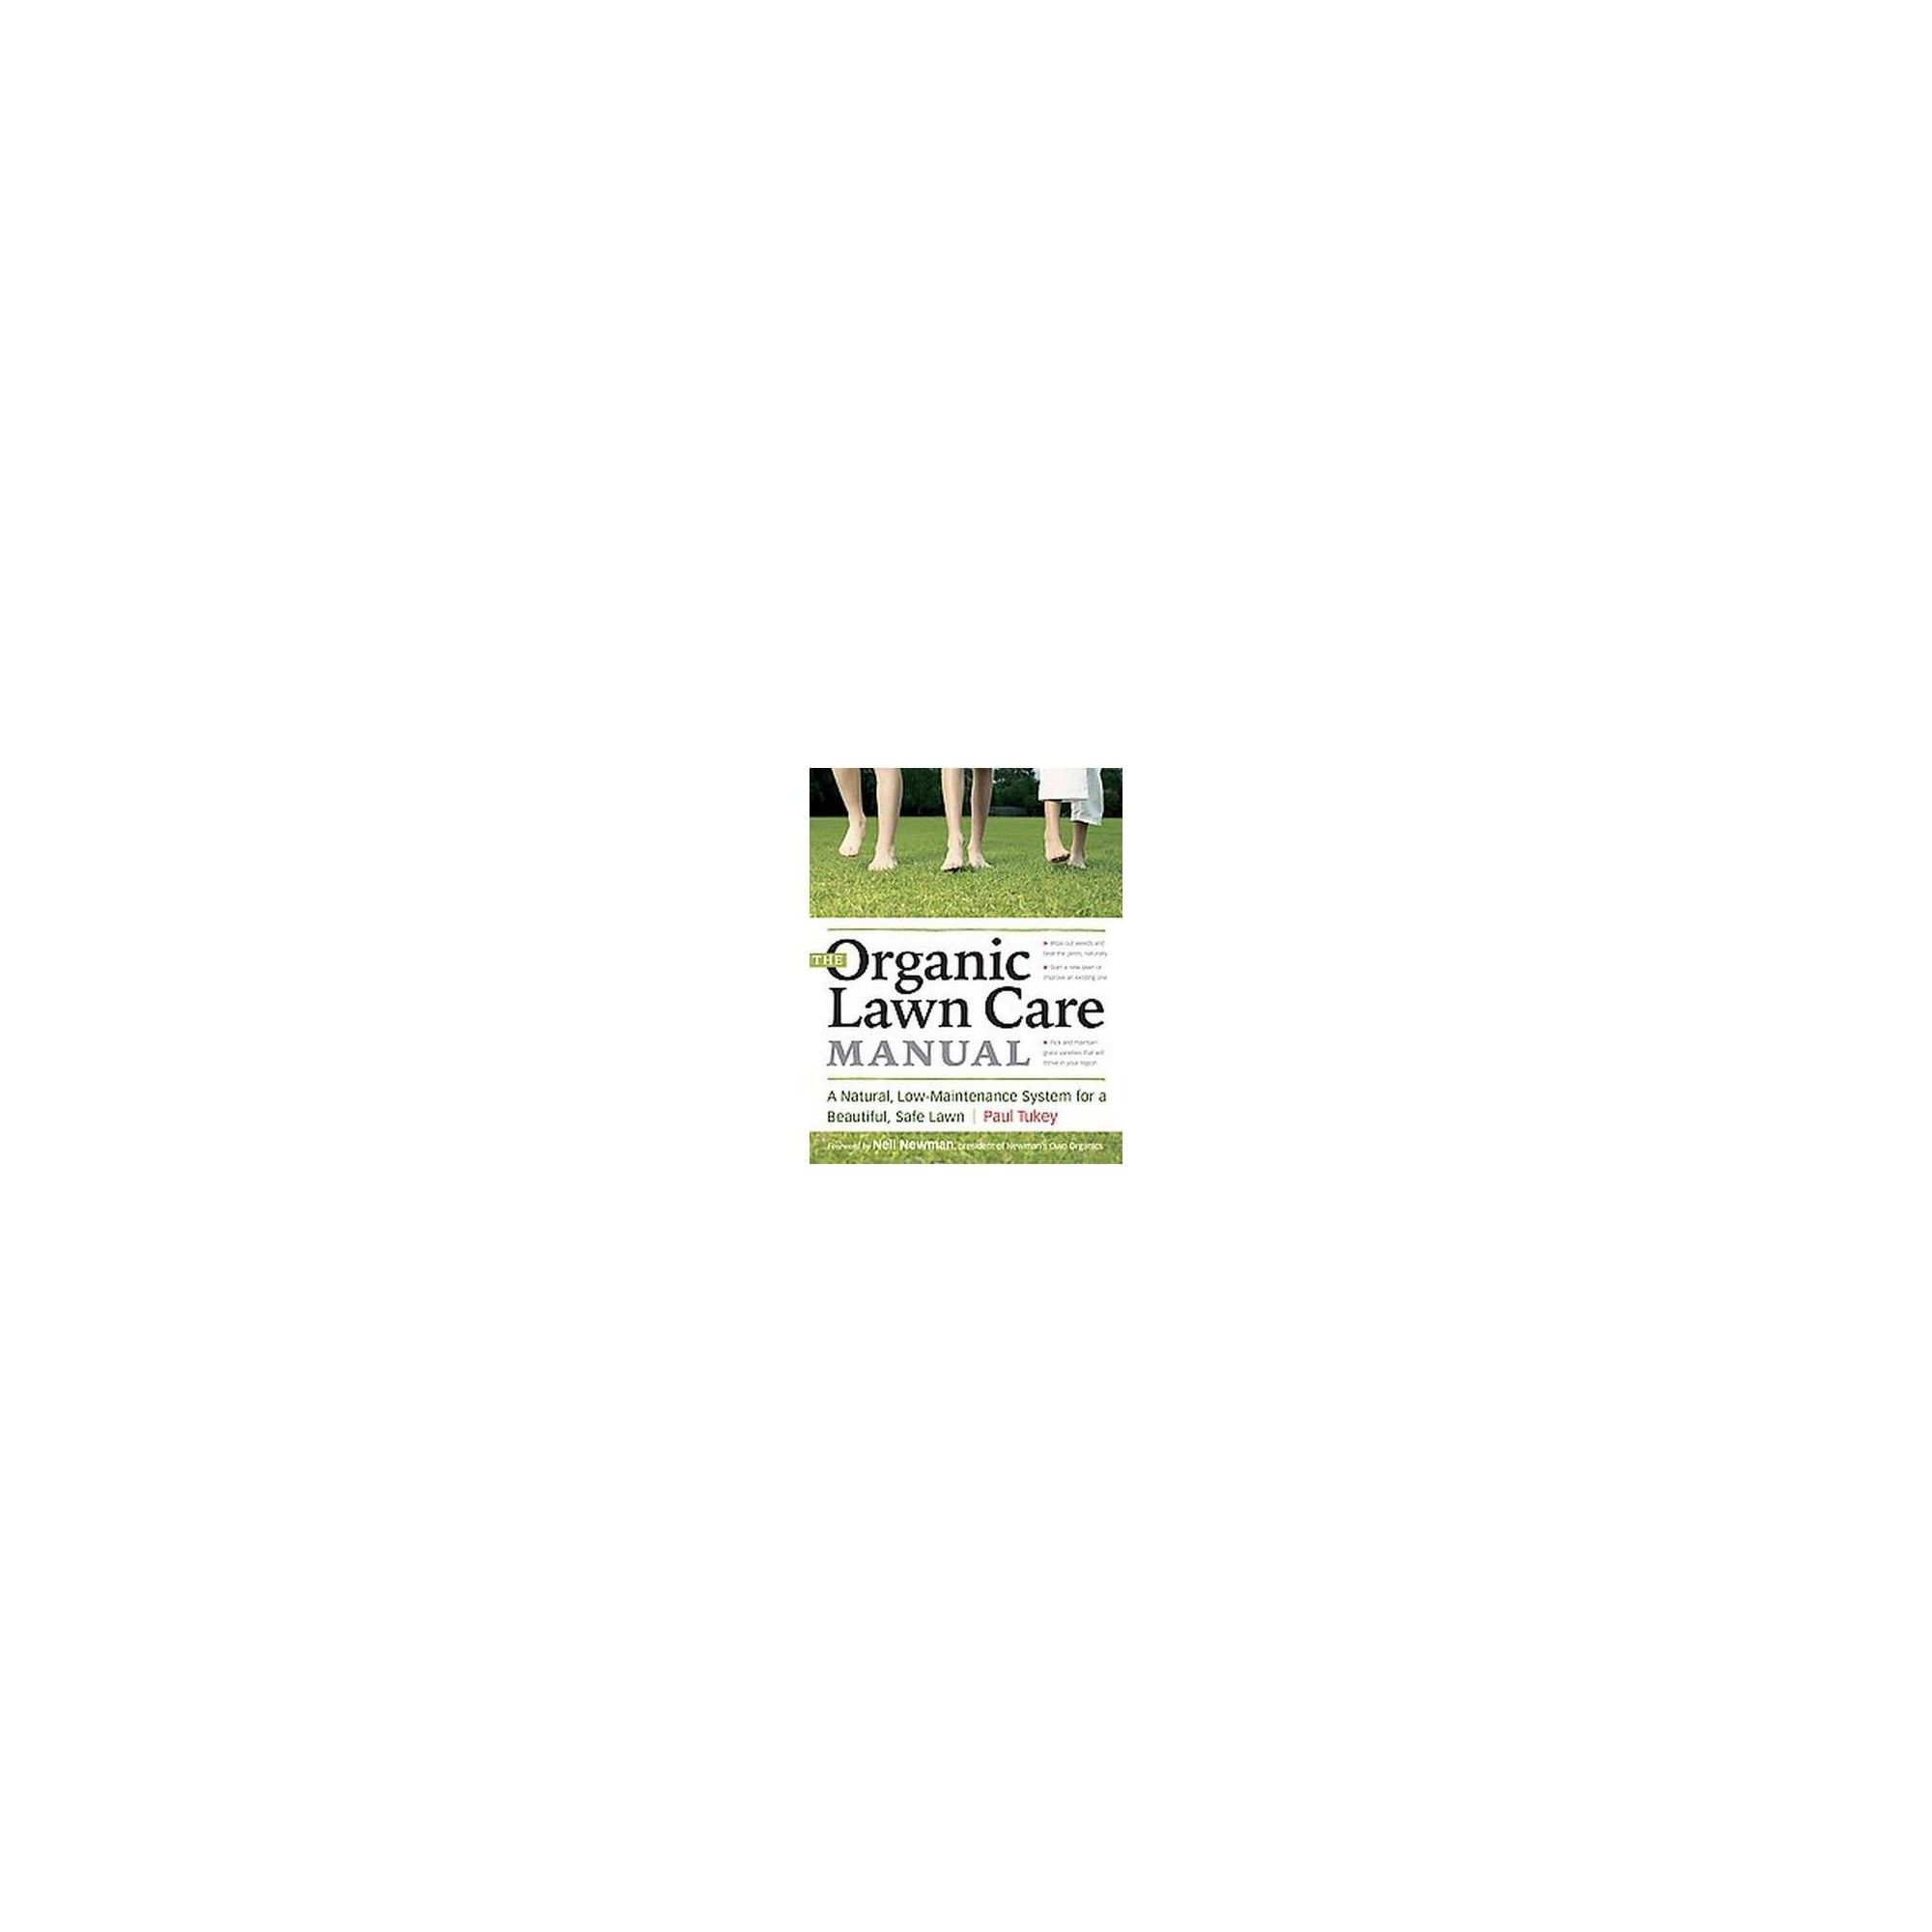 The Organic Lawn Care Manual By Paul Tukey Paperback Organic Lawn Care Lawn Care Organic Lawn